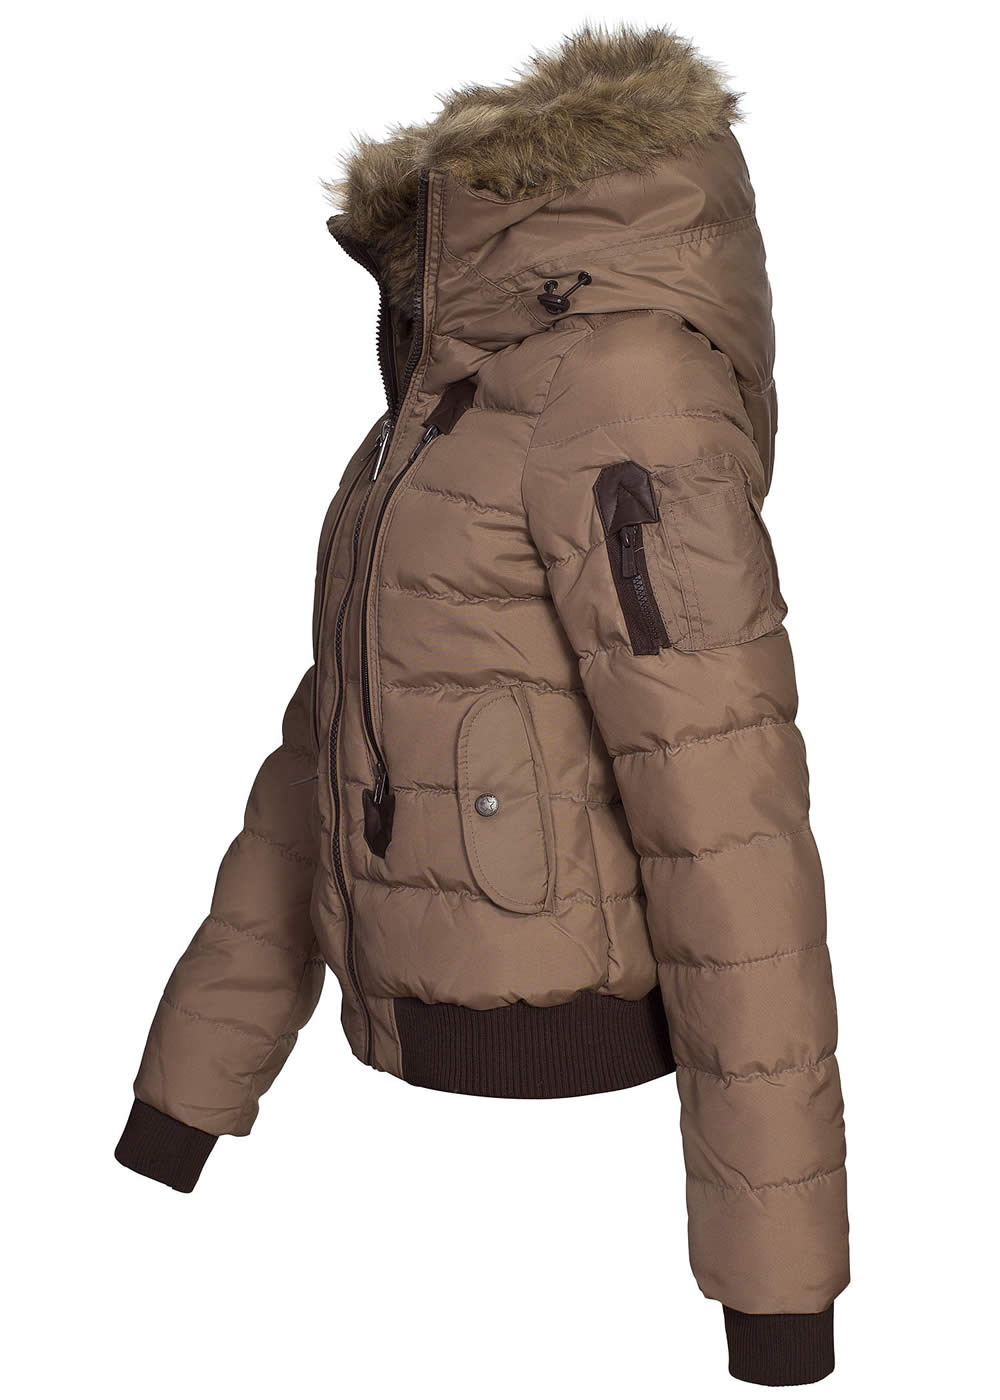 eight2nine damen winter bomber jacke gro e kapuze fell by sublevel braun ebay. Black Bedroom Furniture Sets. Home Design Ideas